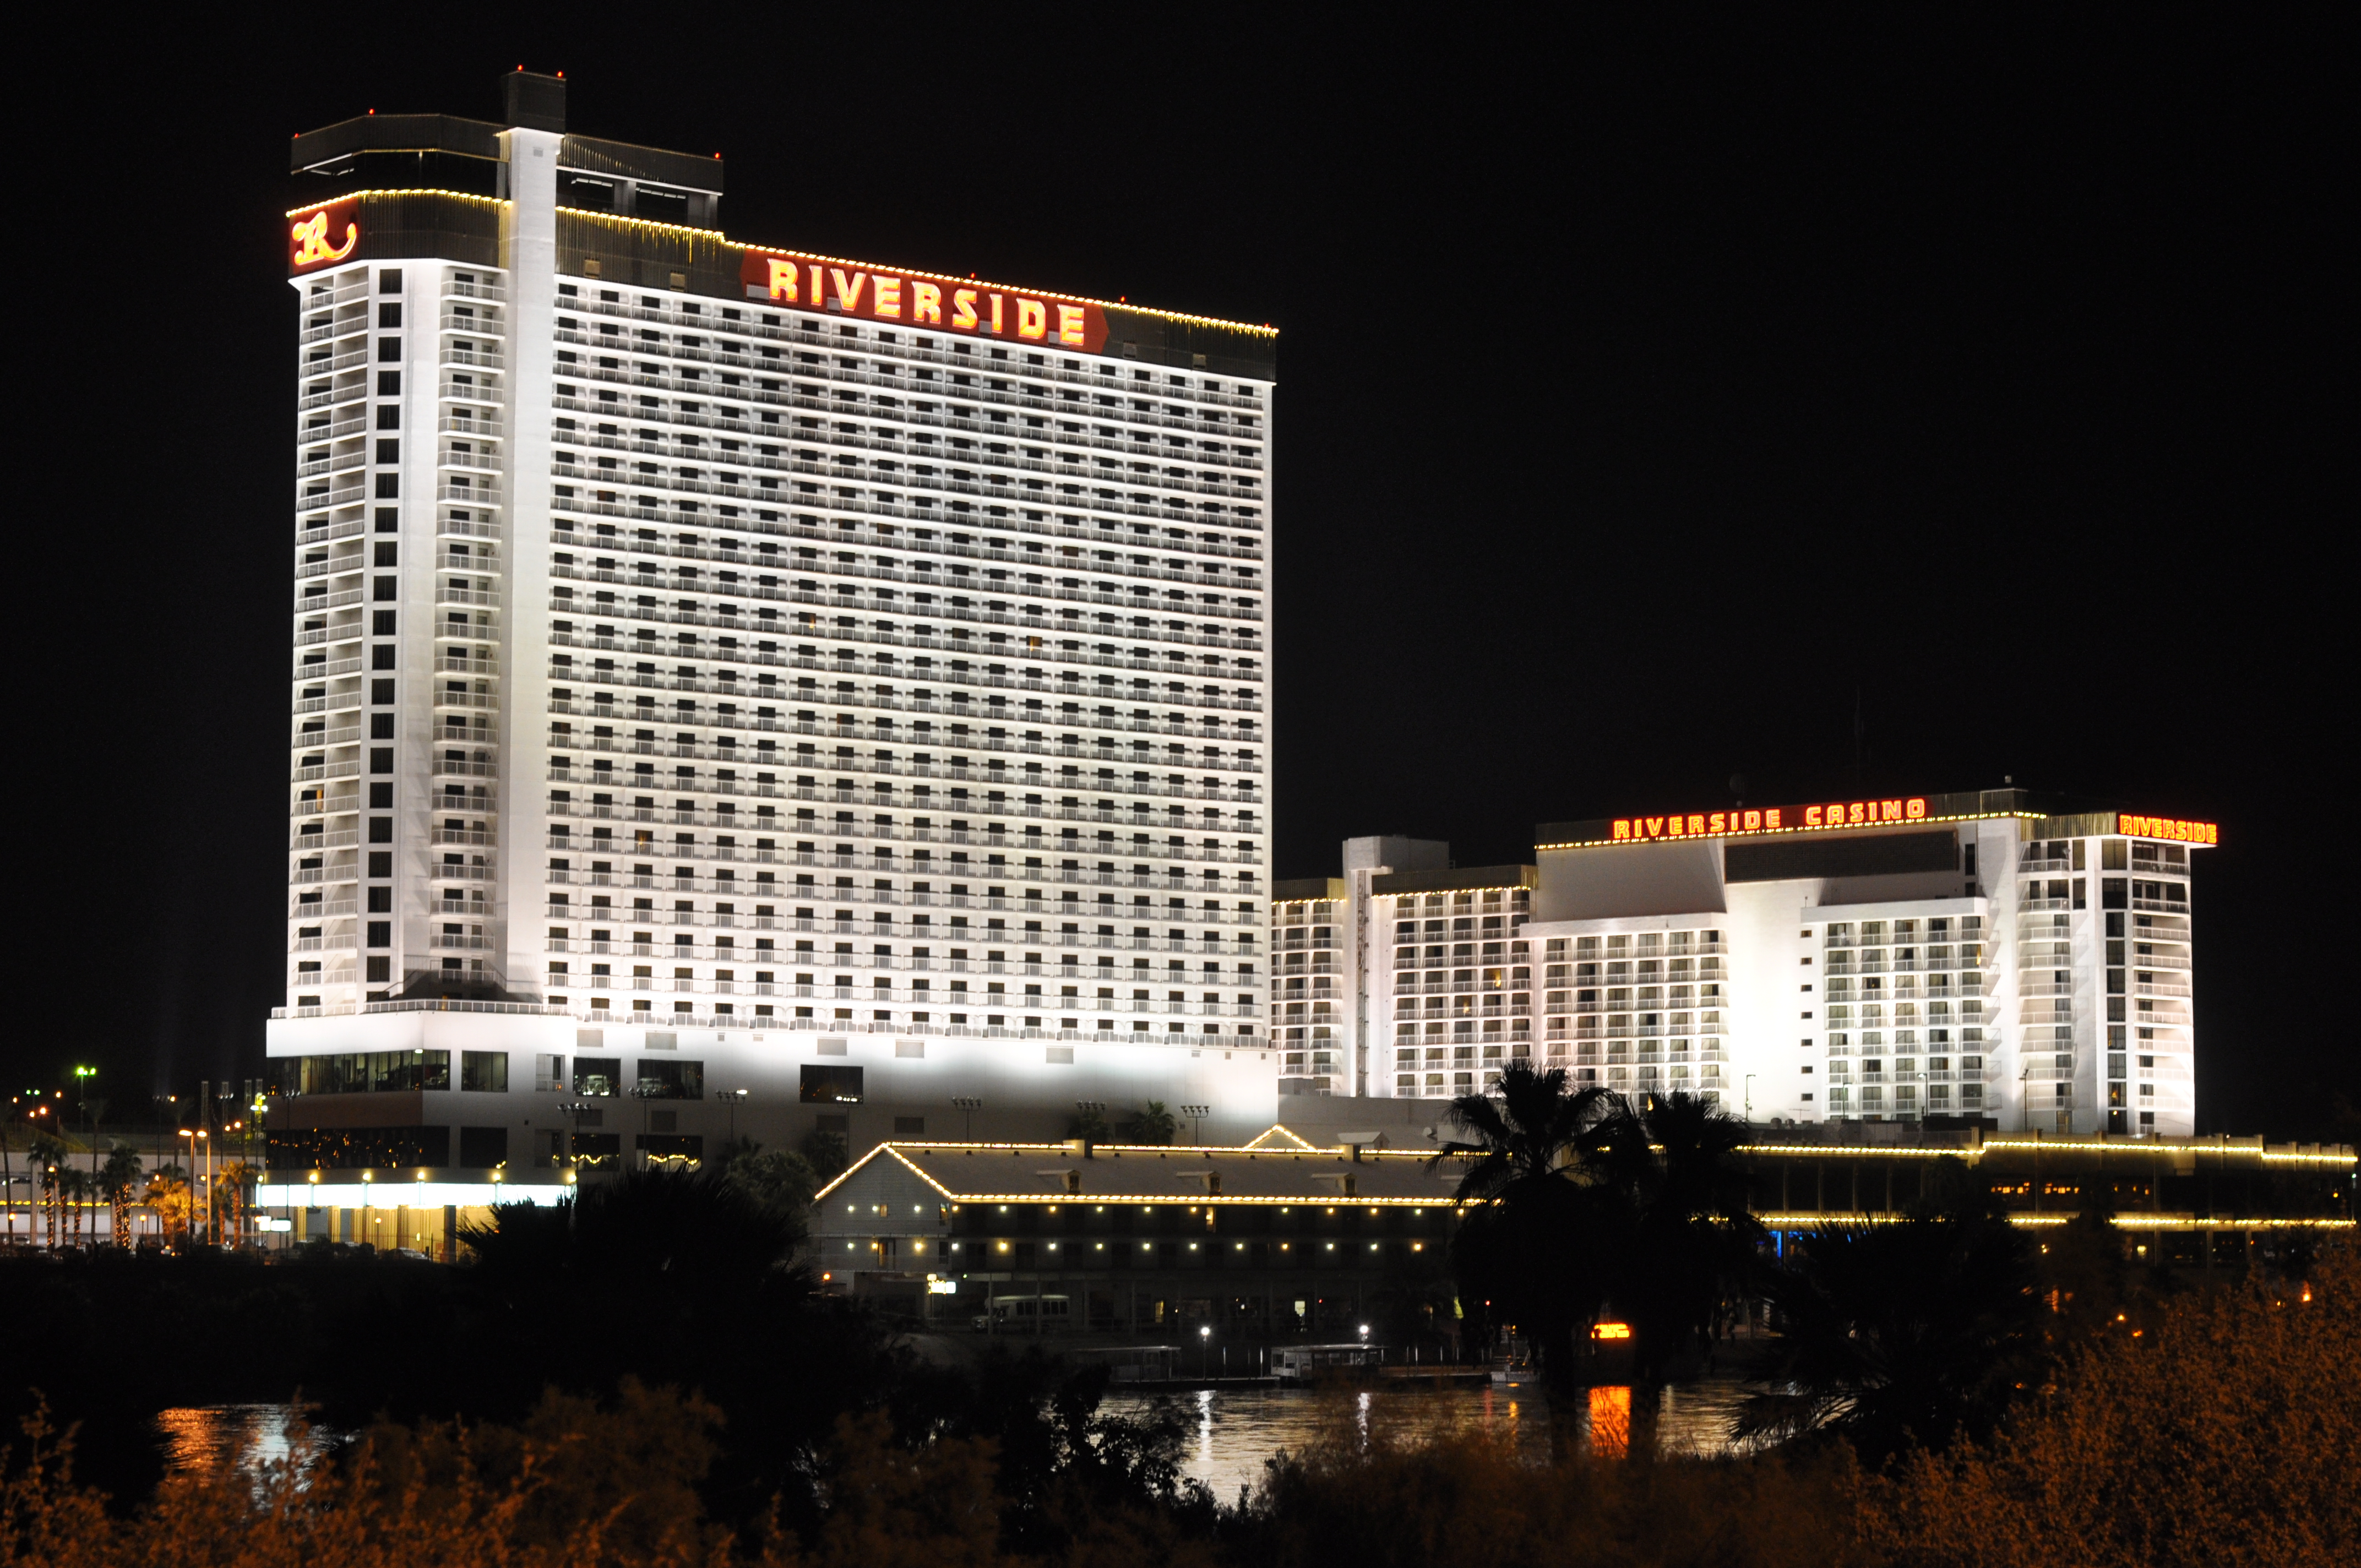 Hotels and casinos laughlin nevada slots slots online